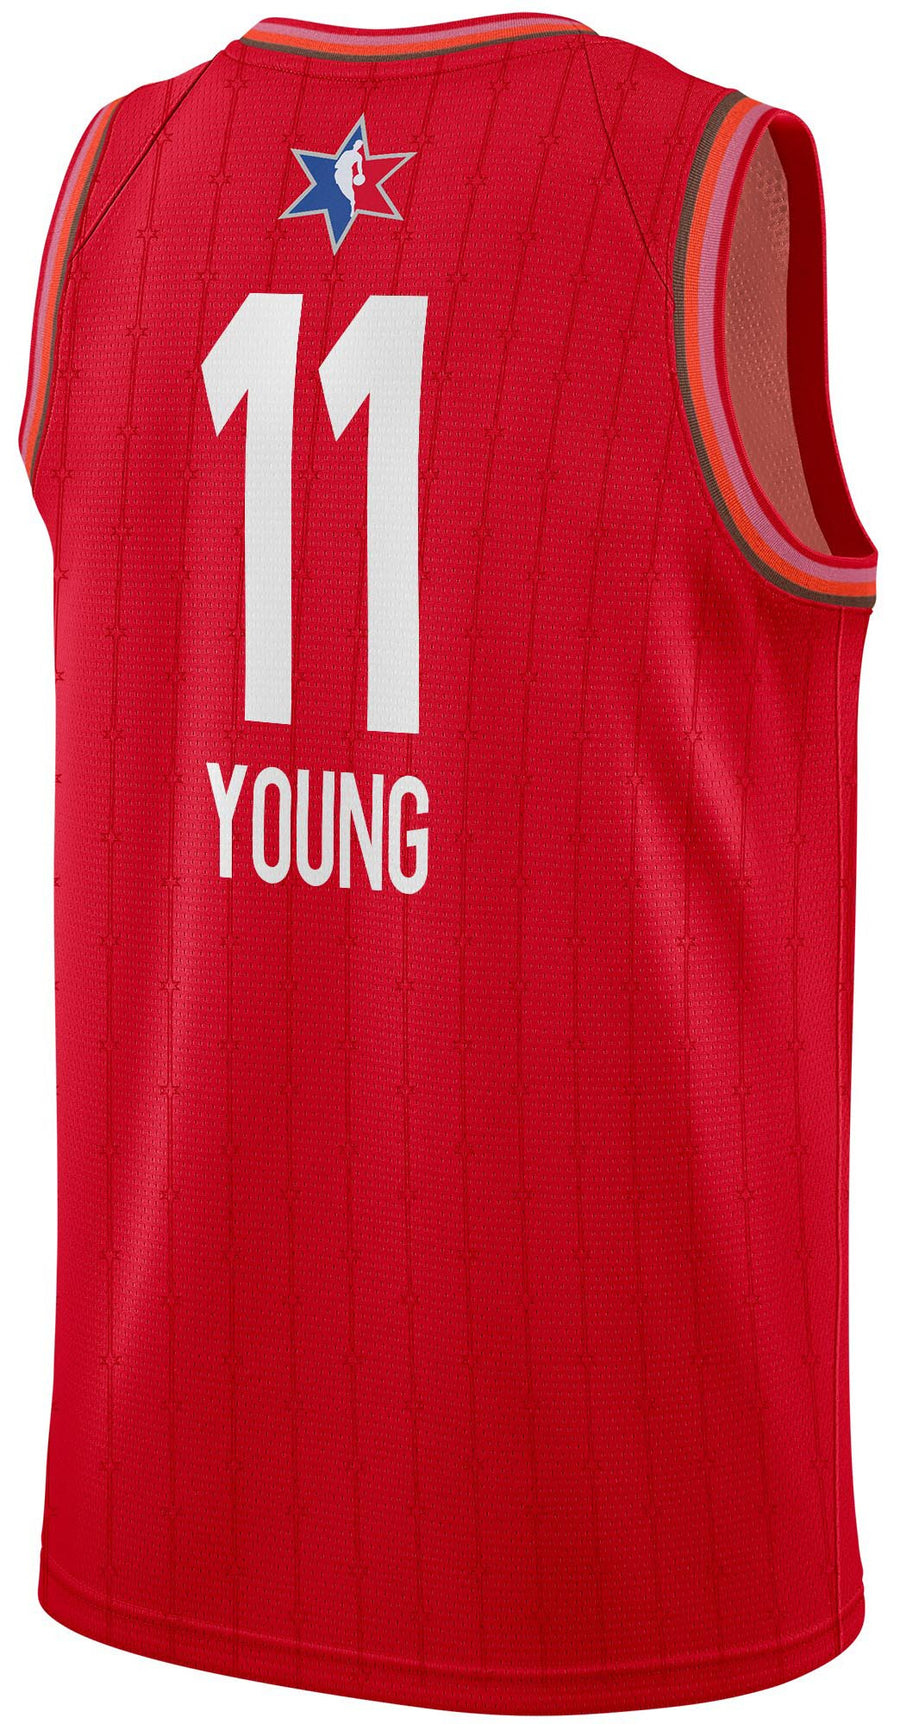 Jordan Brand Trae Young 2020 All-Star Swingman Jersey